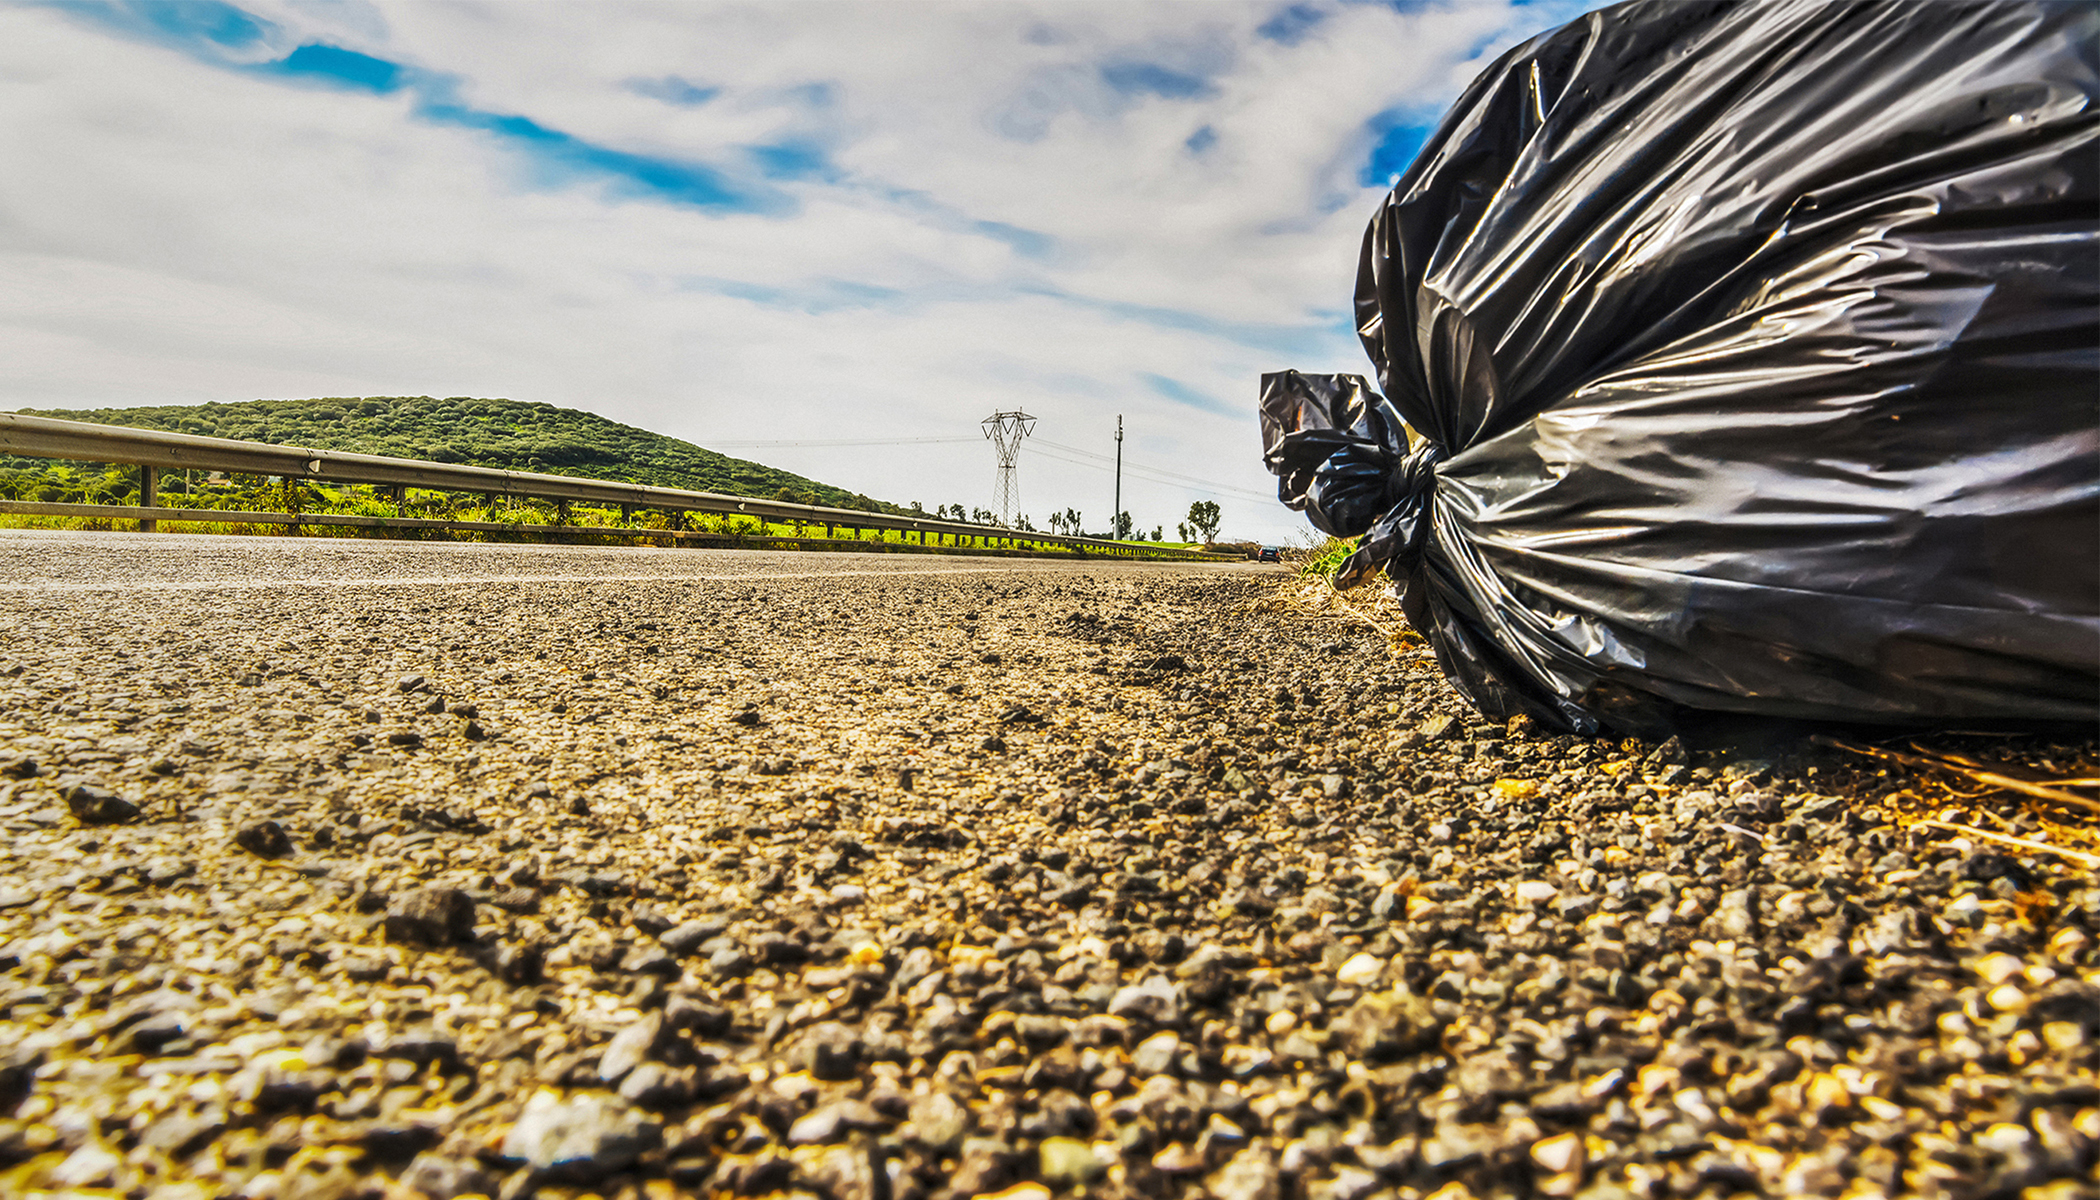 Kentucky Woman Notices a Trash Bag on the Side of Road. Then Realizes, It's Moving